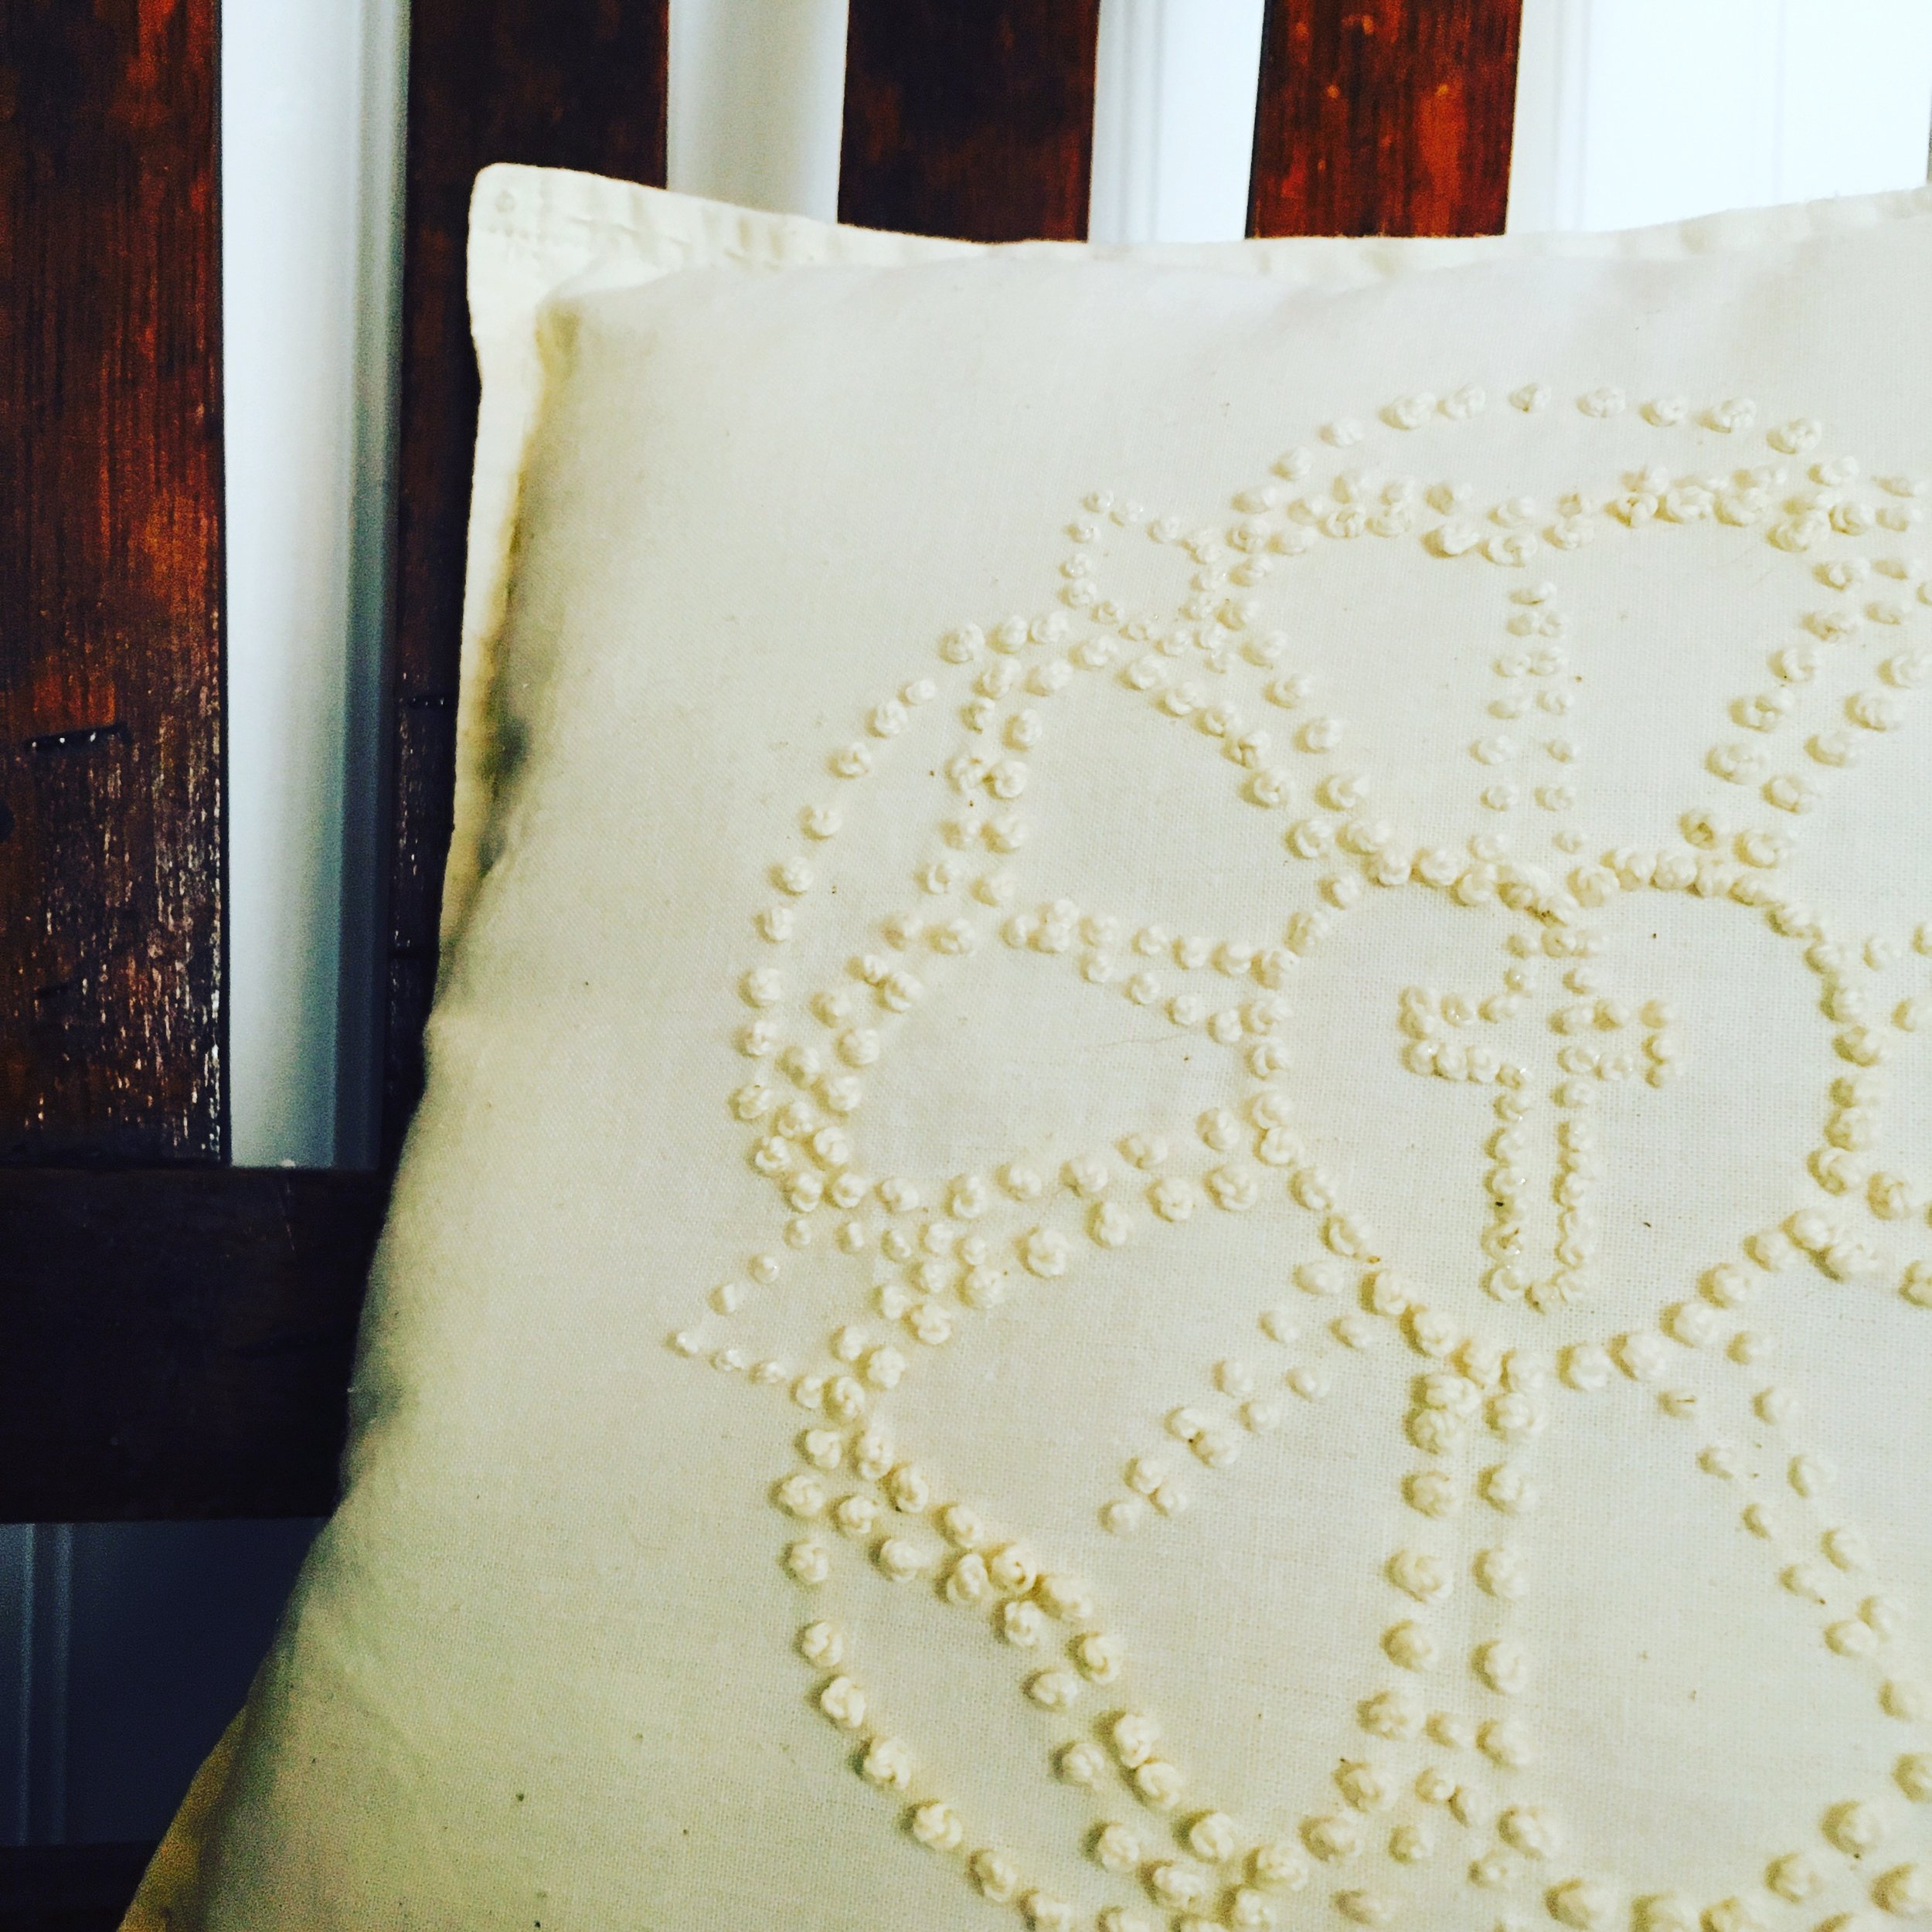 Image Description: White pillow with the Lutheran Rose in candle-wicking on the front. Sitting on a brown chair with a white bead board background.